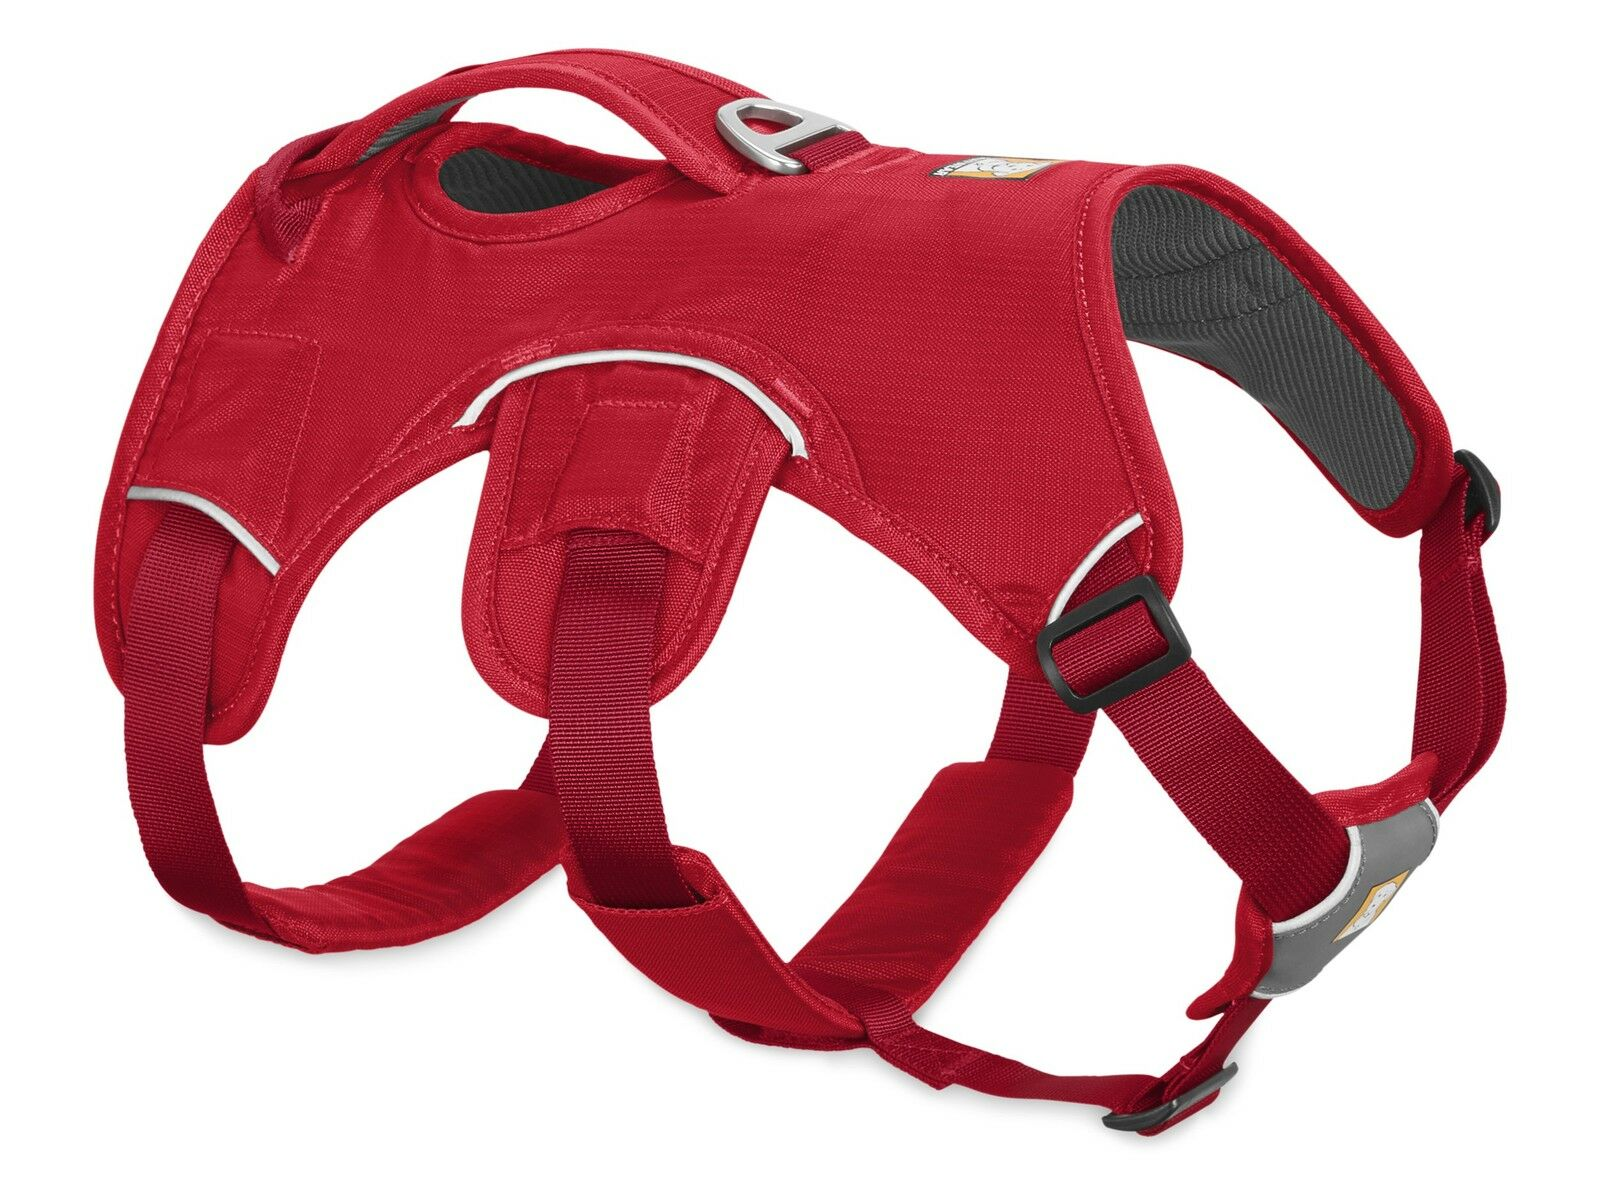 Ruffwear Web Master Master Master Dog Harness 30102 615 rot Currant NEW 355022